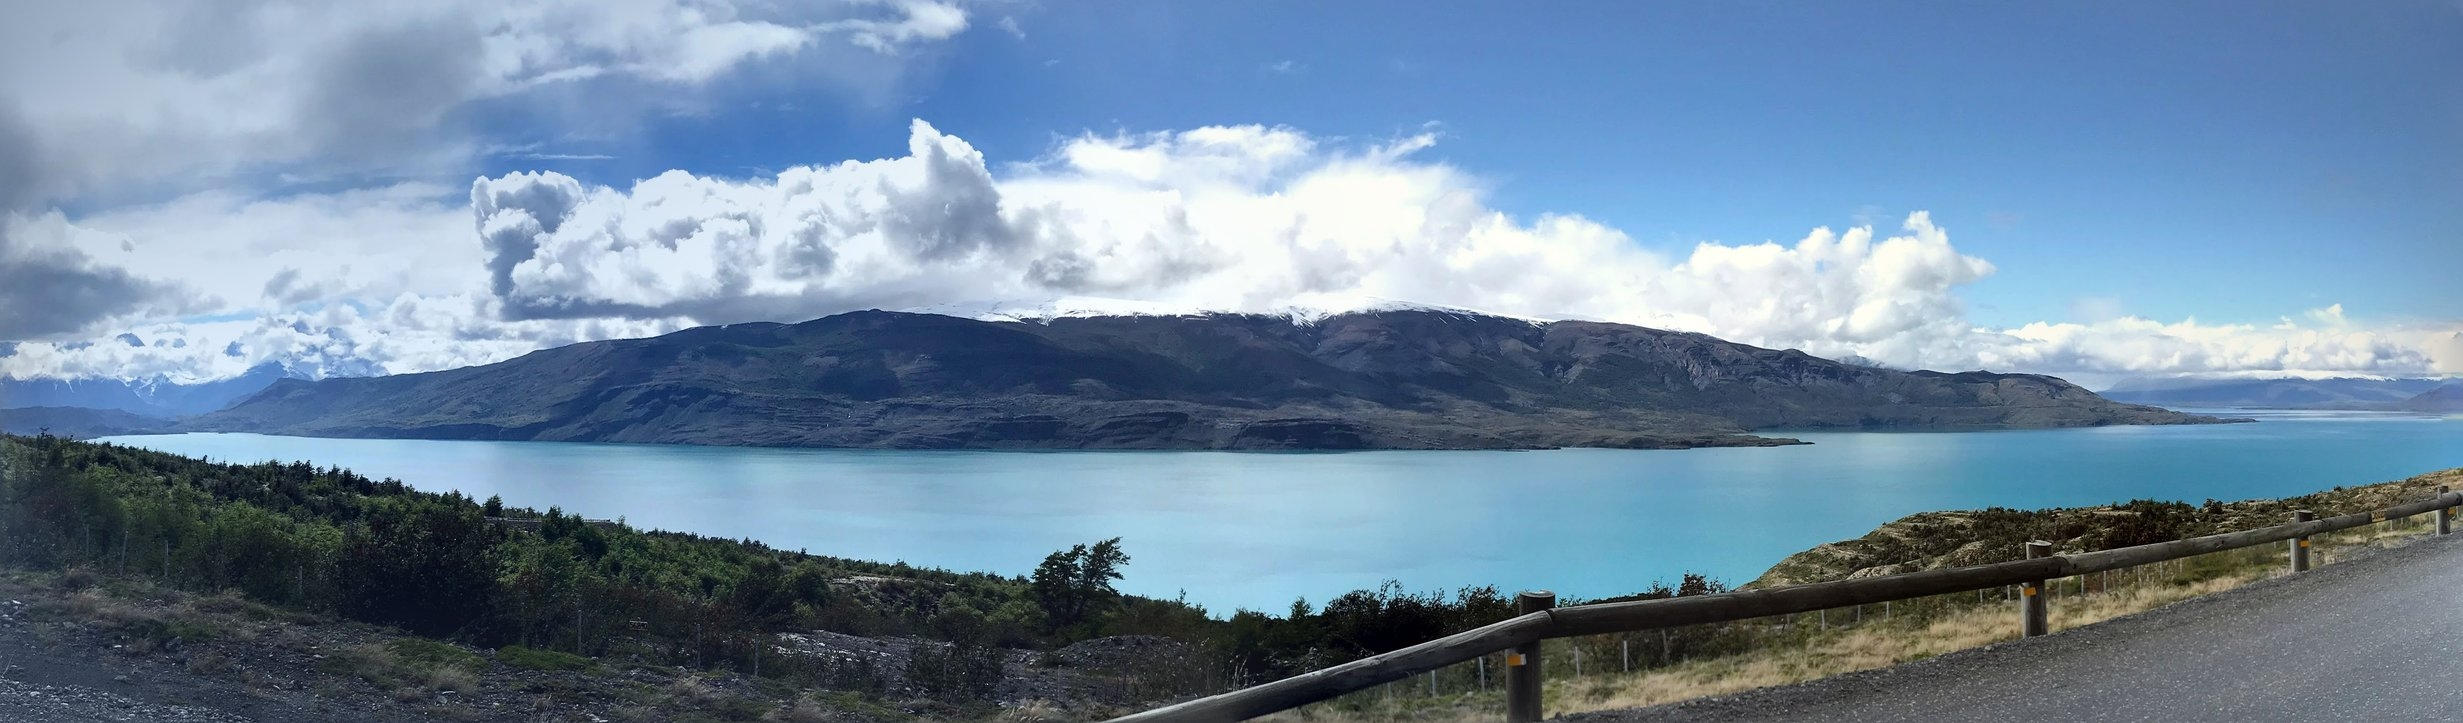 The drive from Patagonia Camp into the park was full of beautiful sights.